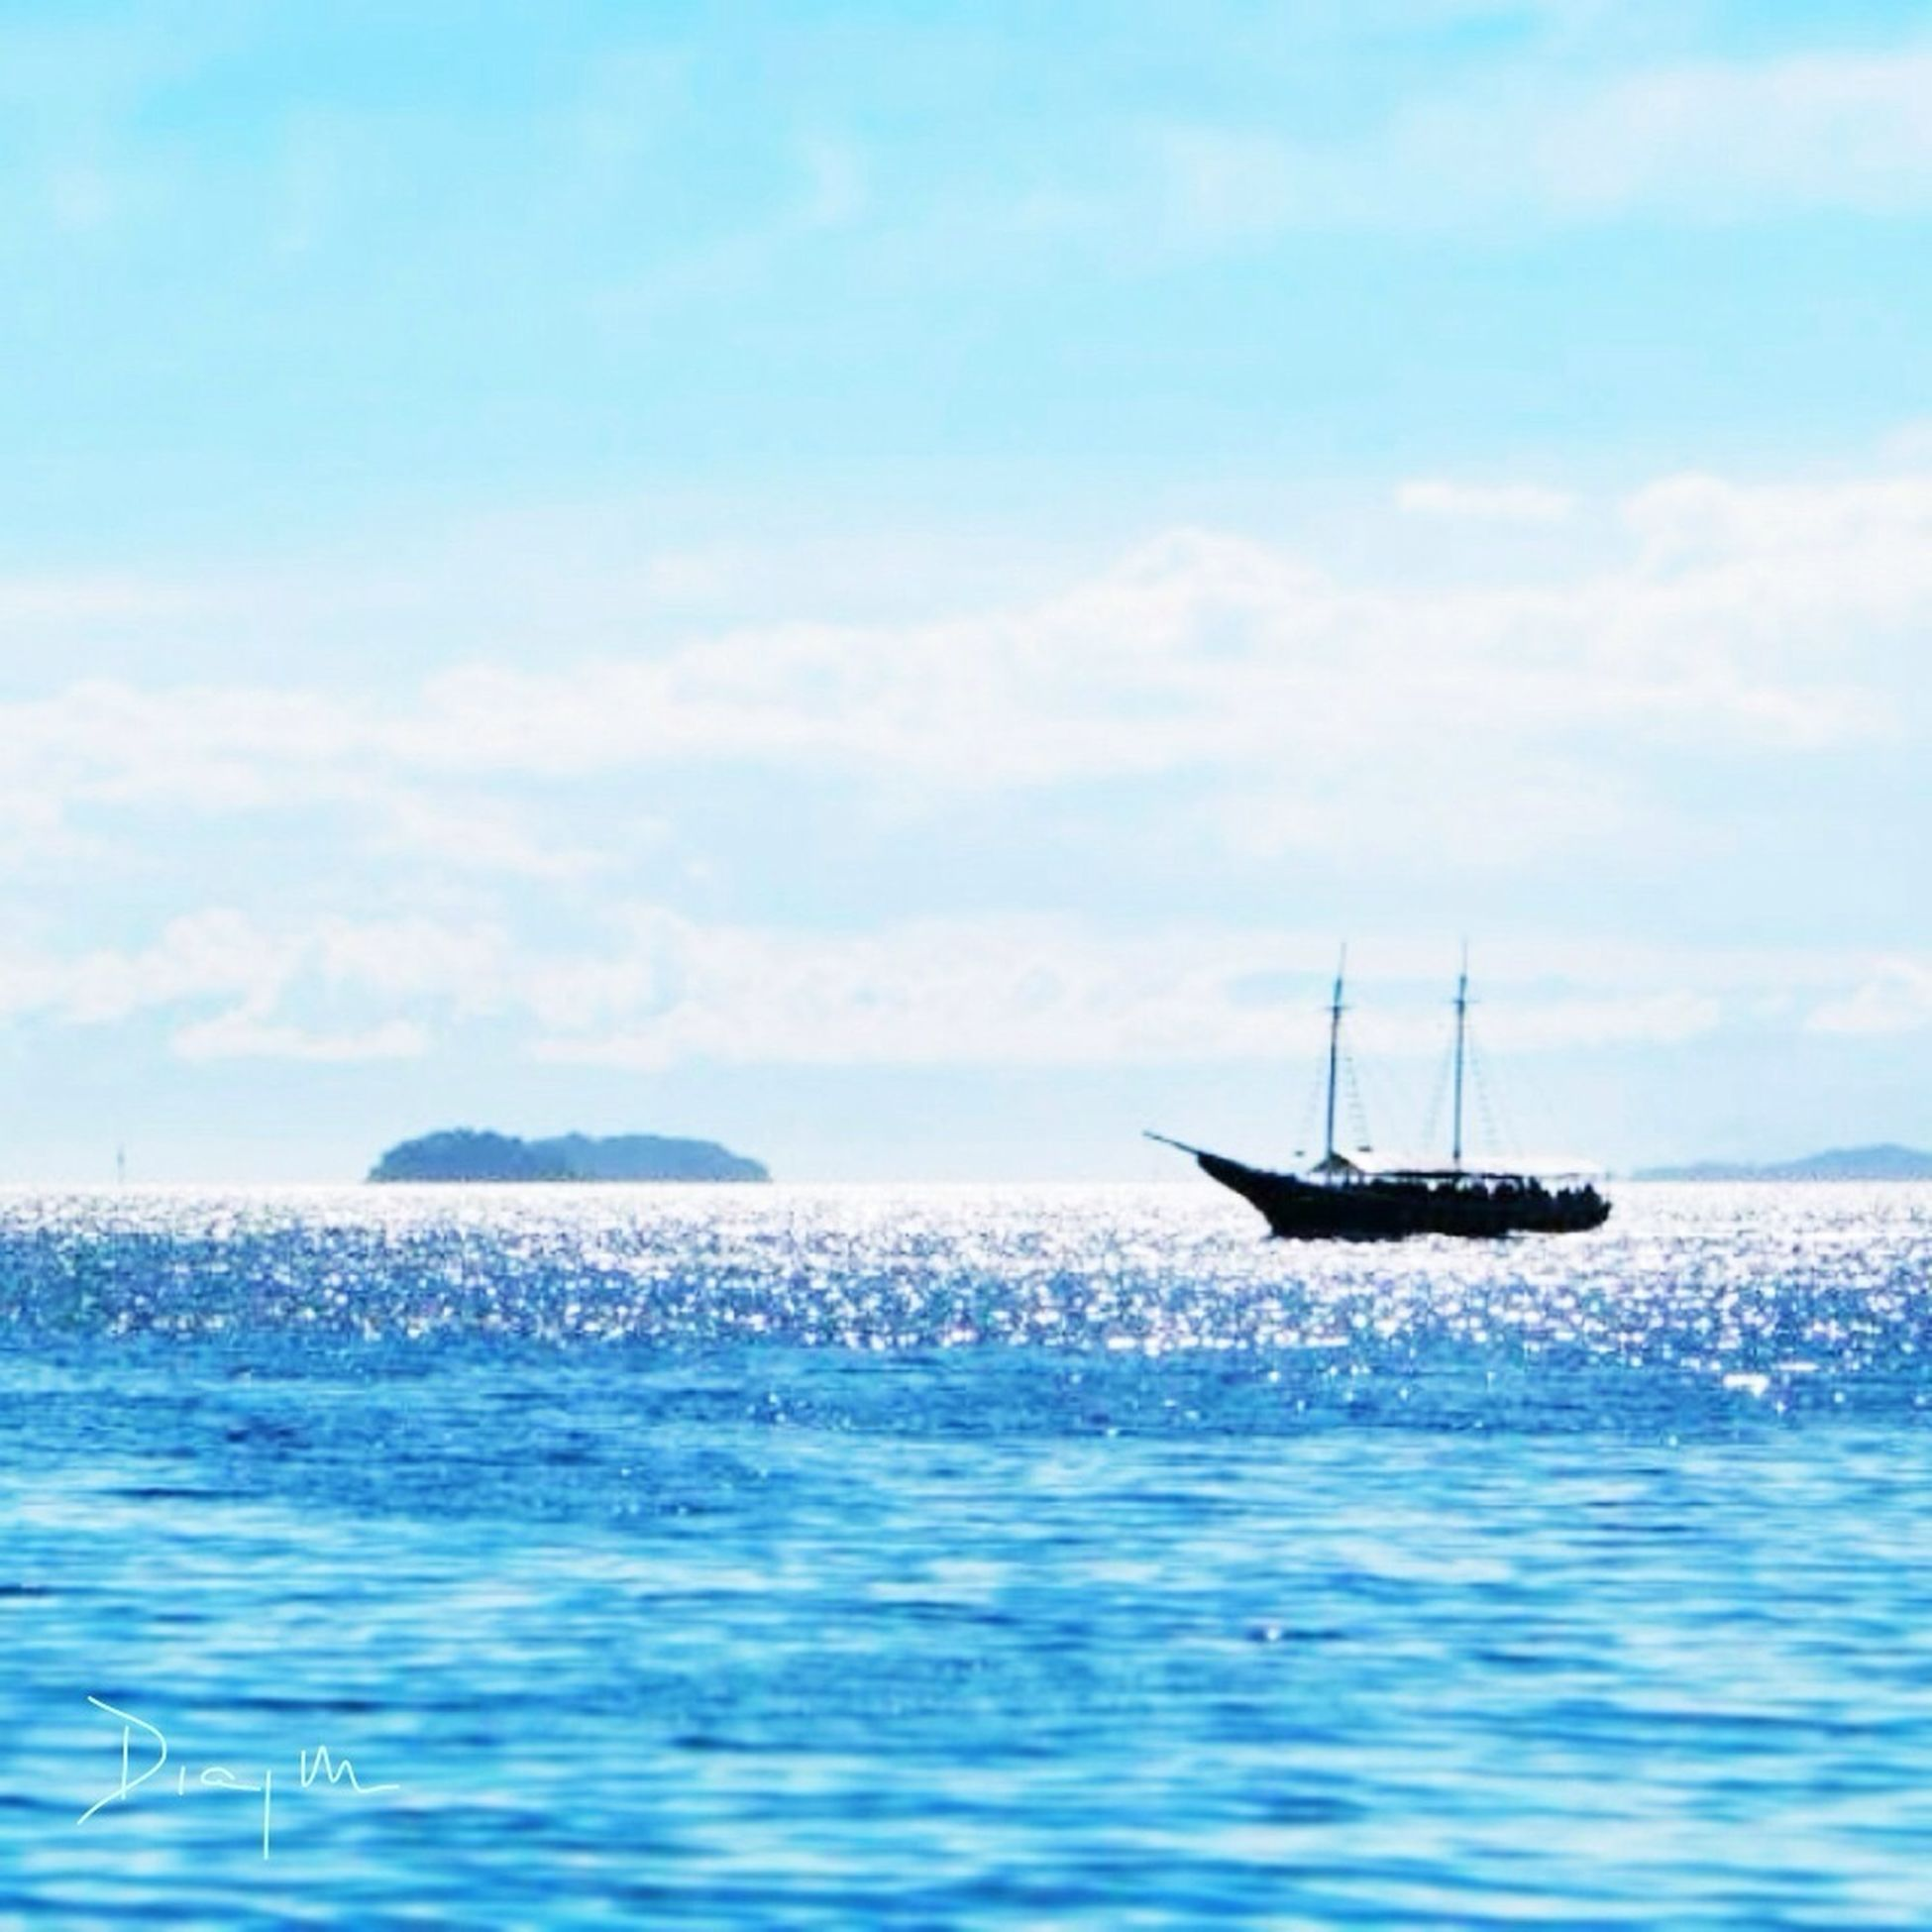 sea, water, nautical vessel, transportation, horizon over water, mode of transport, boat, waterfront, sky, scenics, tranquil scene, beauty in nature, tranquility, nature, sailing, rippled, blue, travel, seascape, idyllic